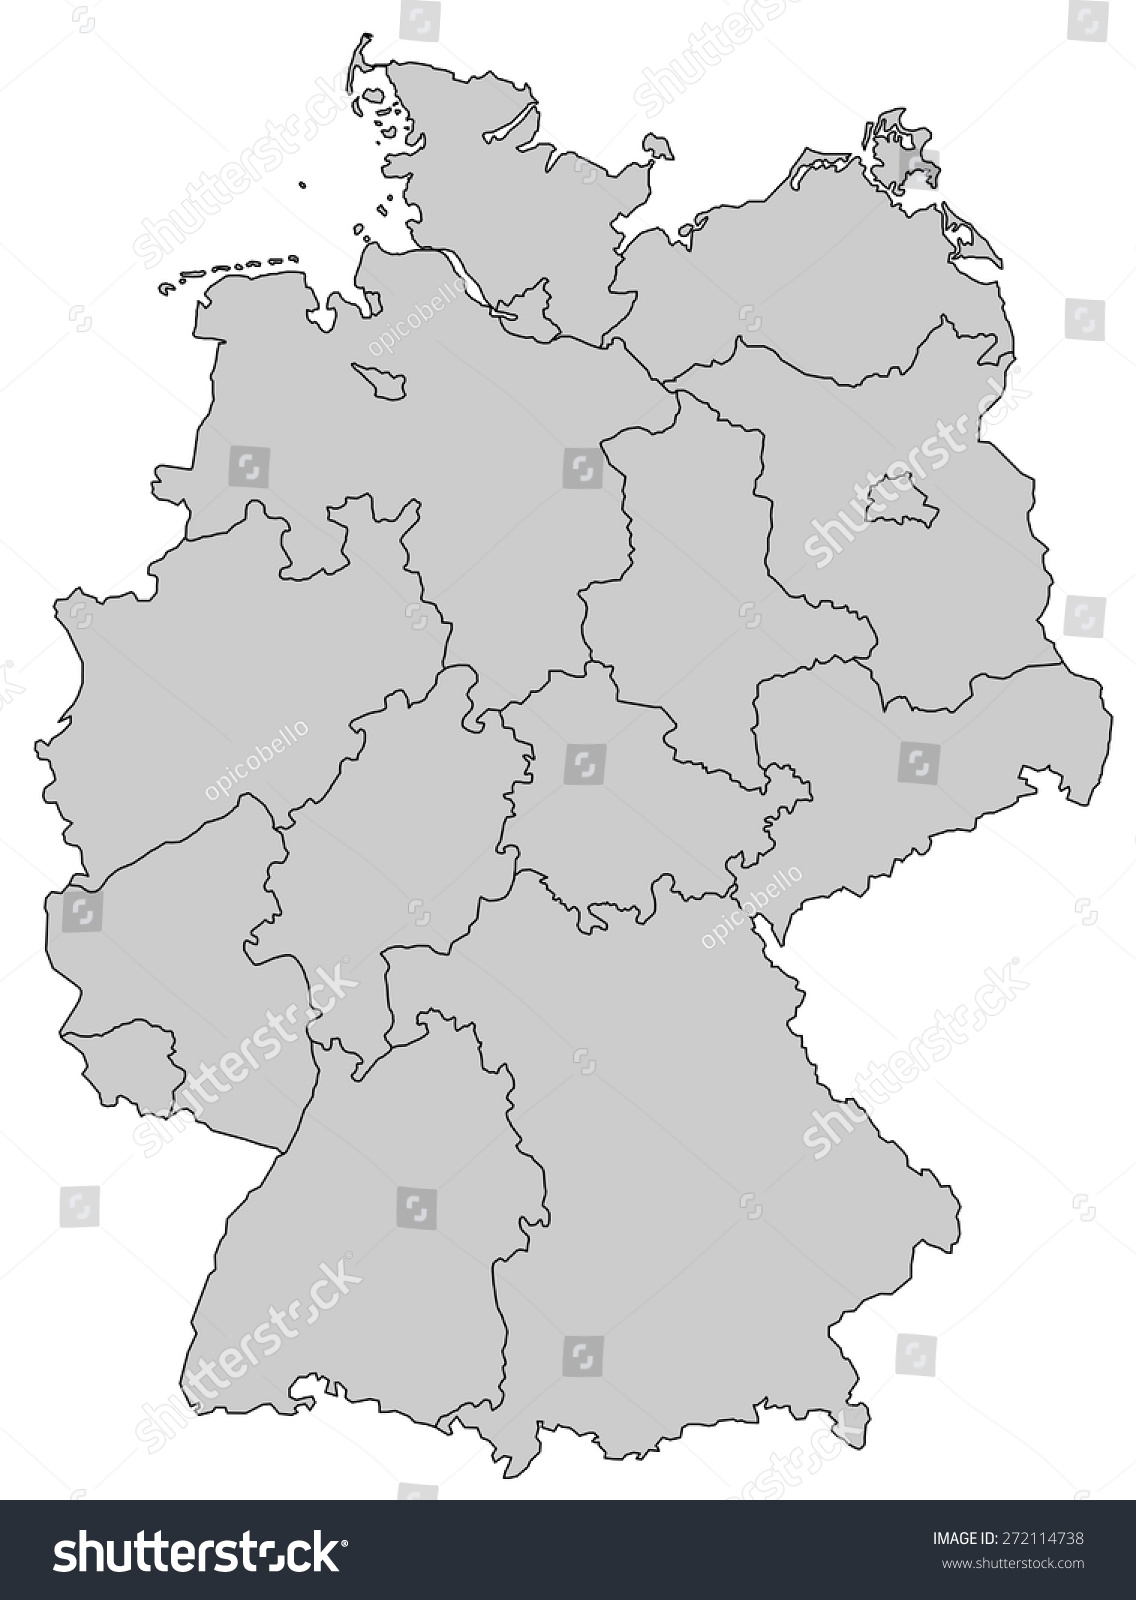 Germany Map Provinces Gray Stock Vector Shutterstock - Germany map provinces